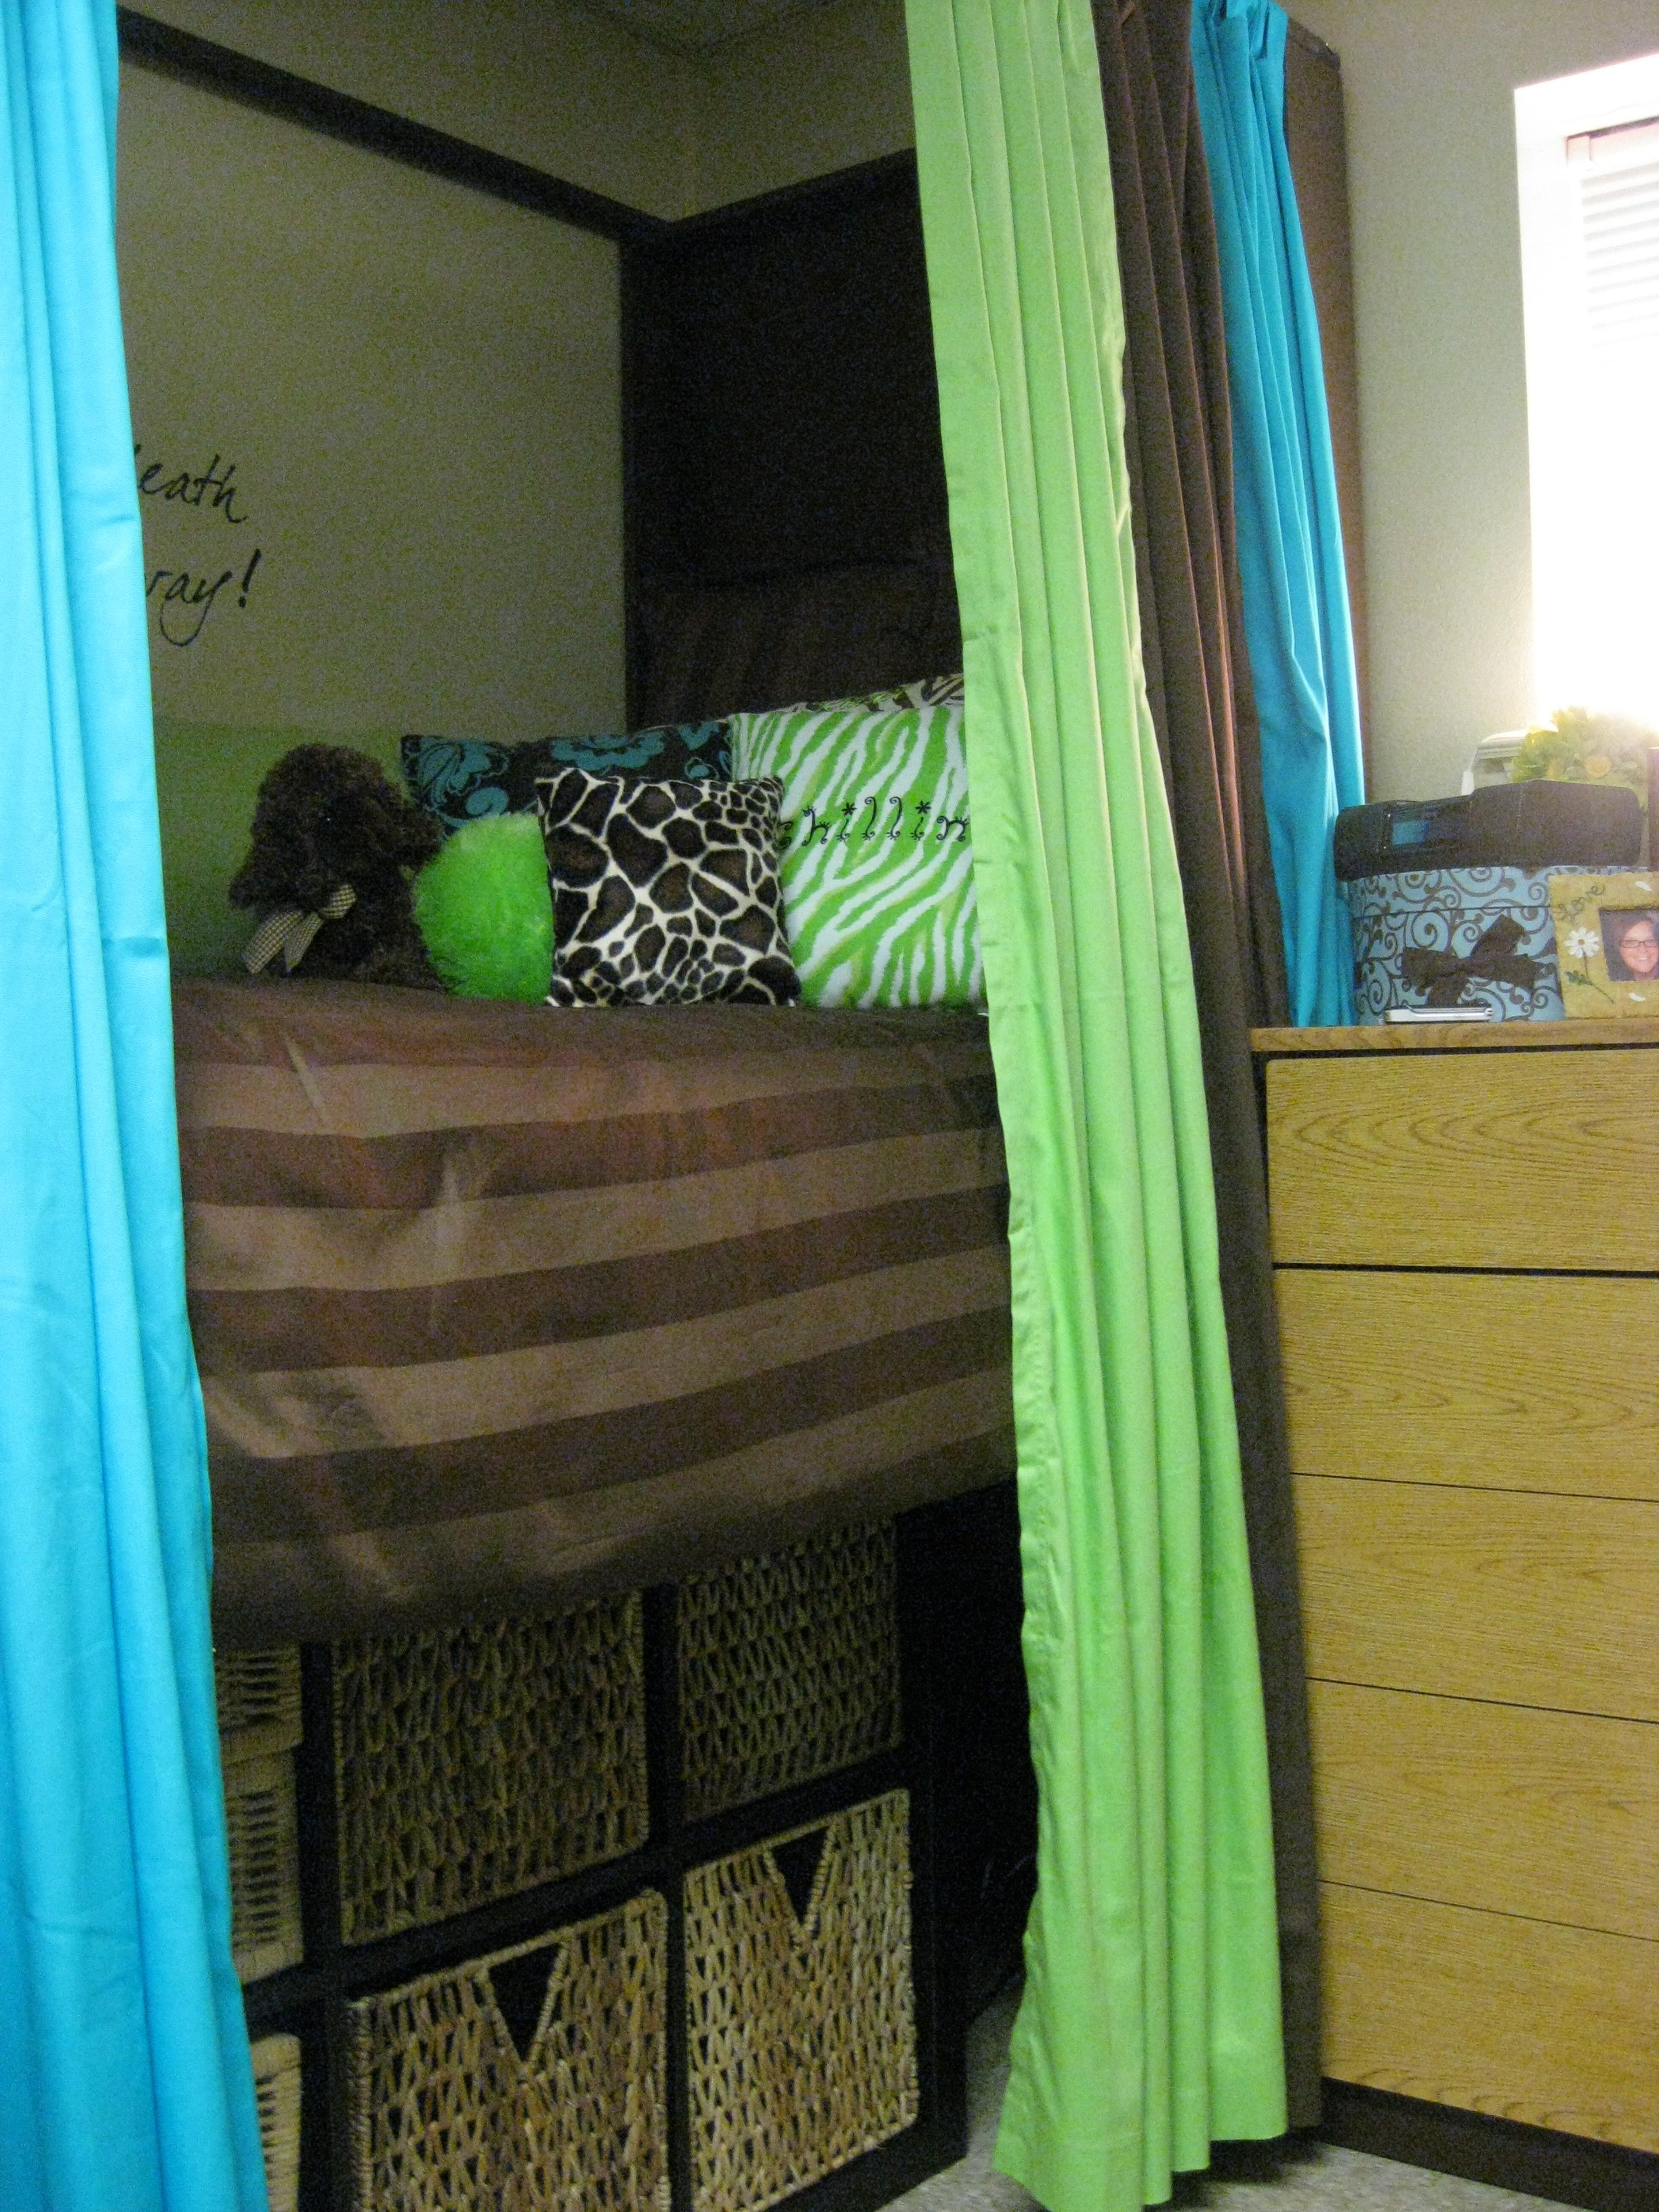 Dorm room loft bed ideas  Shelving with baskets for extra storage from IKEA The bed frame was